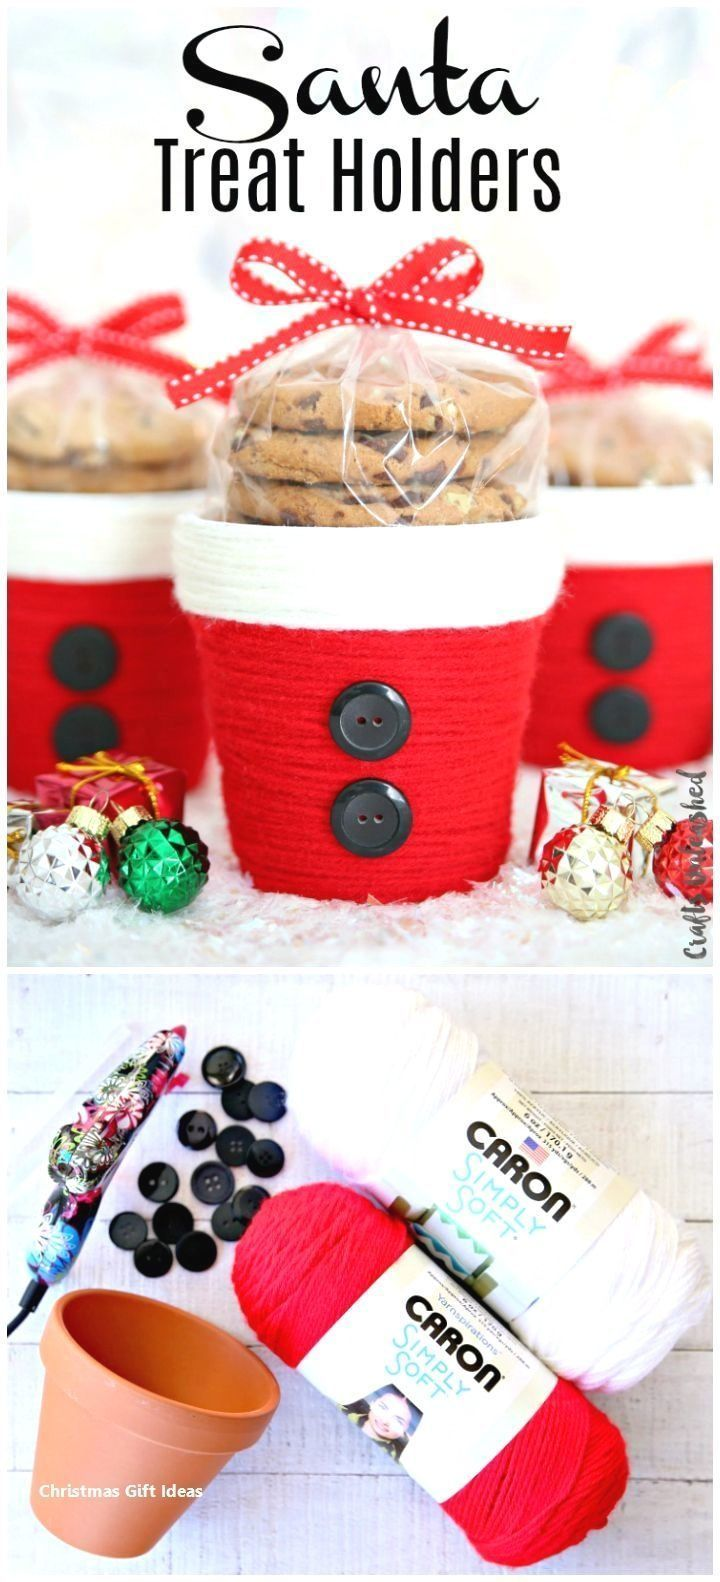 Holiday Gift Ideas Pinwire Christmas Gifts New Christmas Gift Ideas Christmasgifts P Diy Christmas Treats Christmas Treats Holders Diy Christmas Gifts